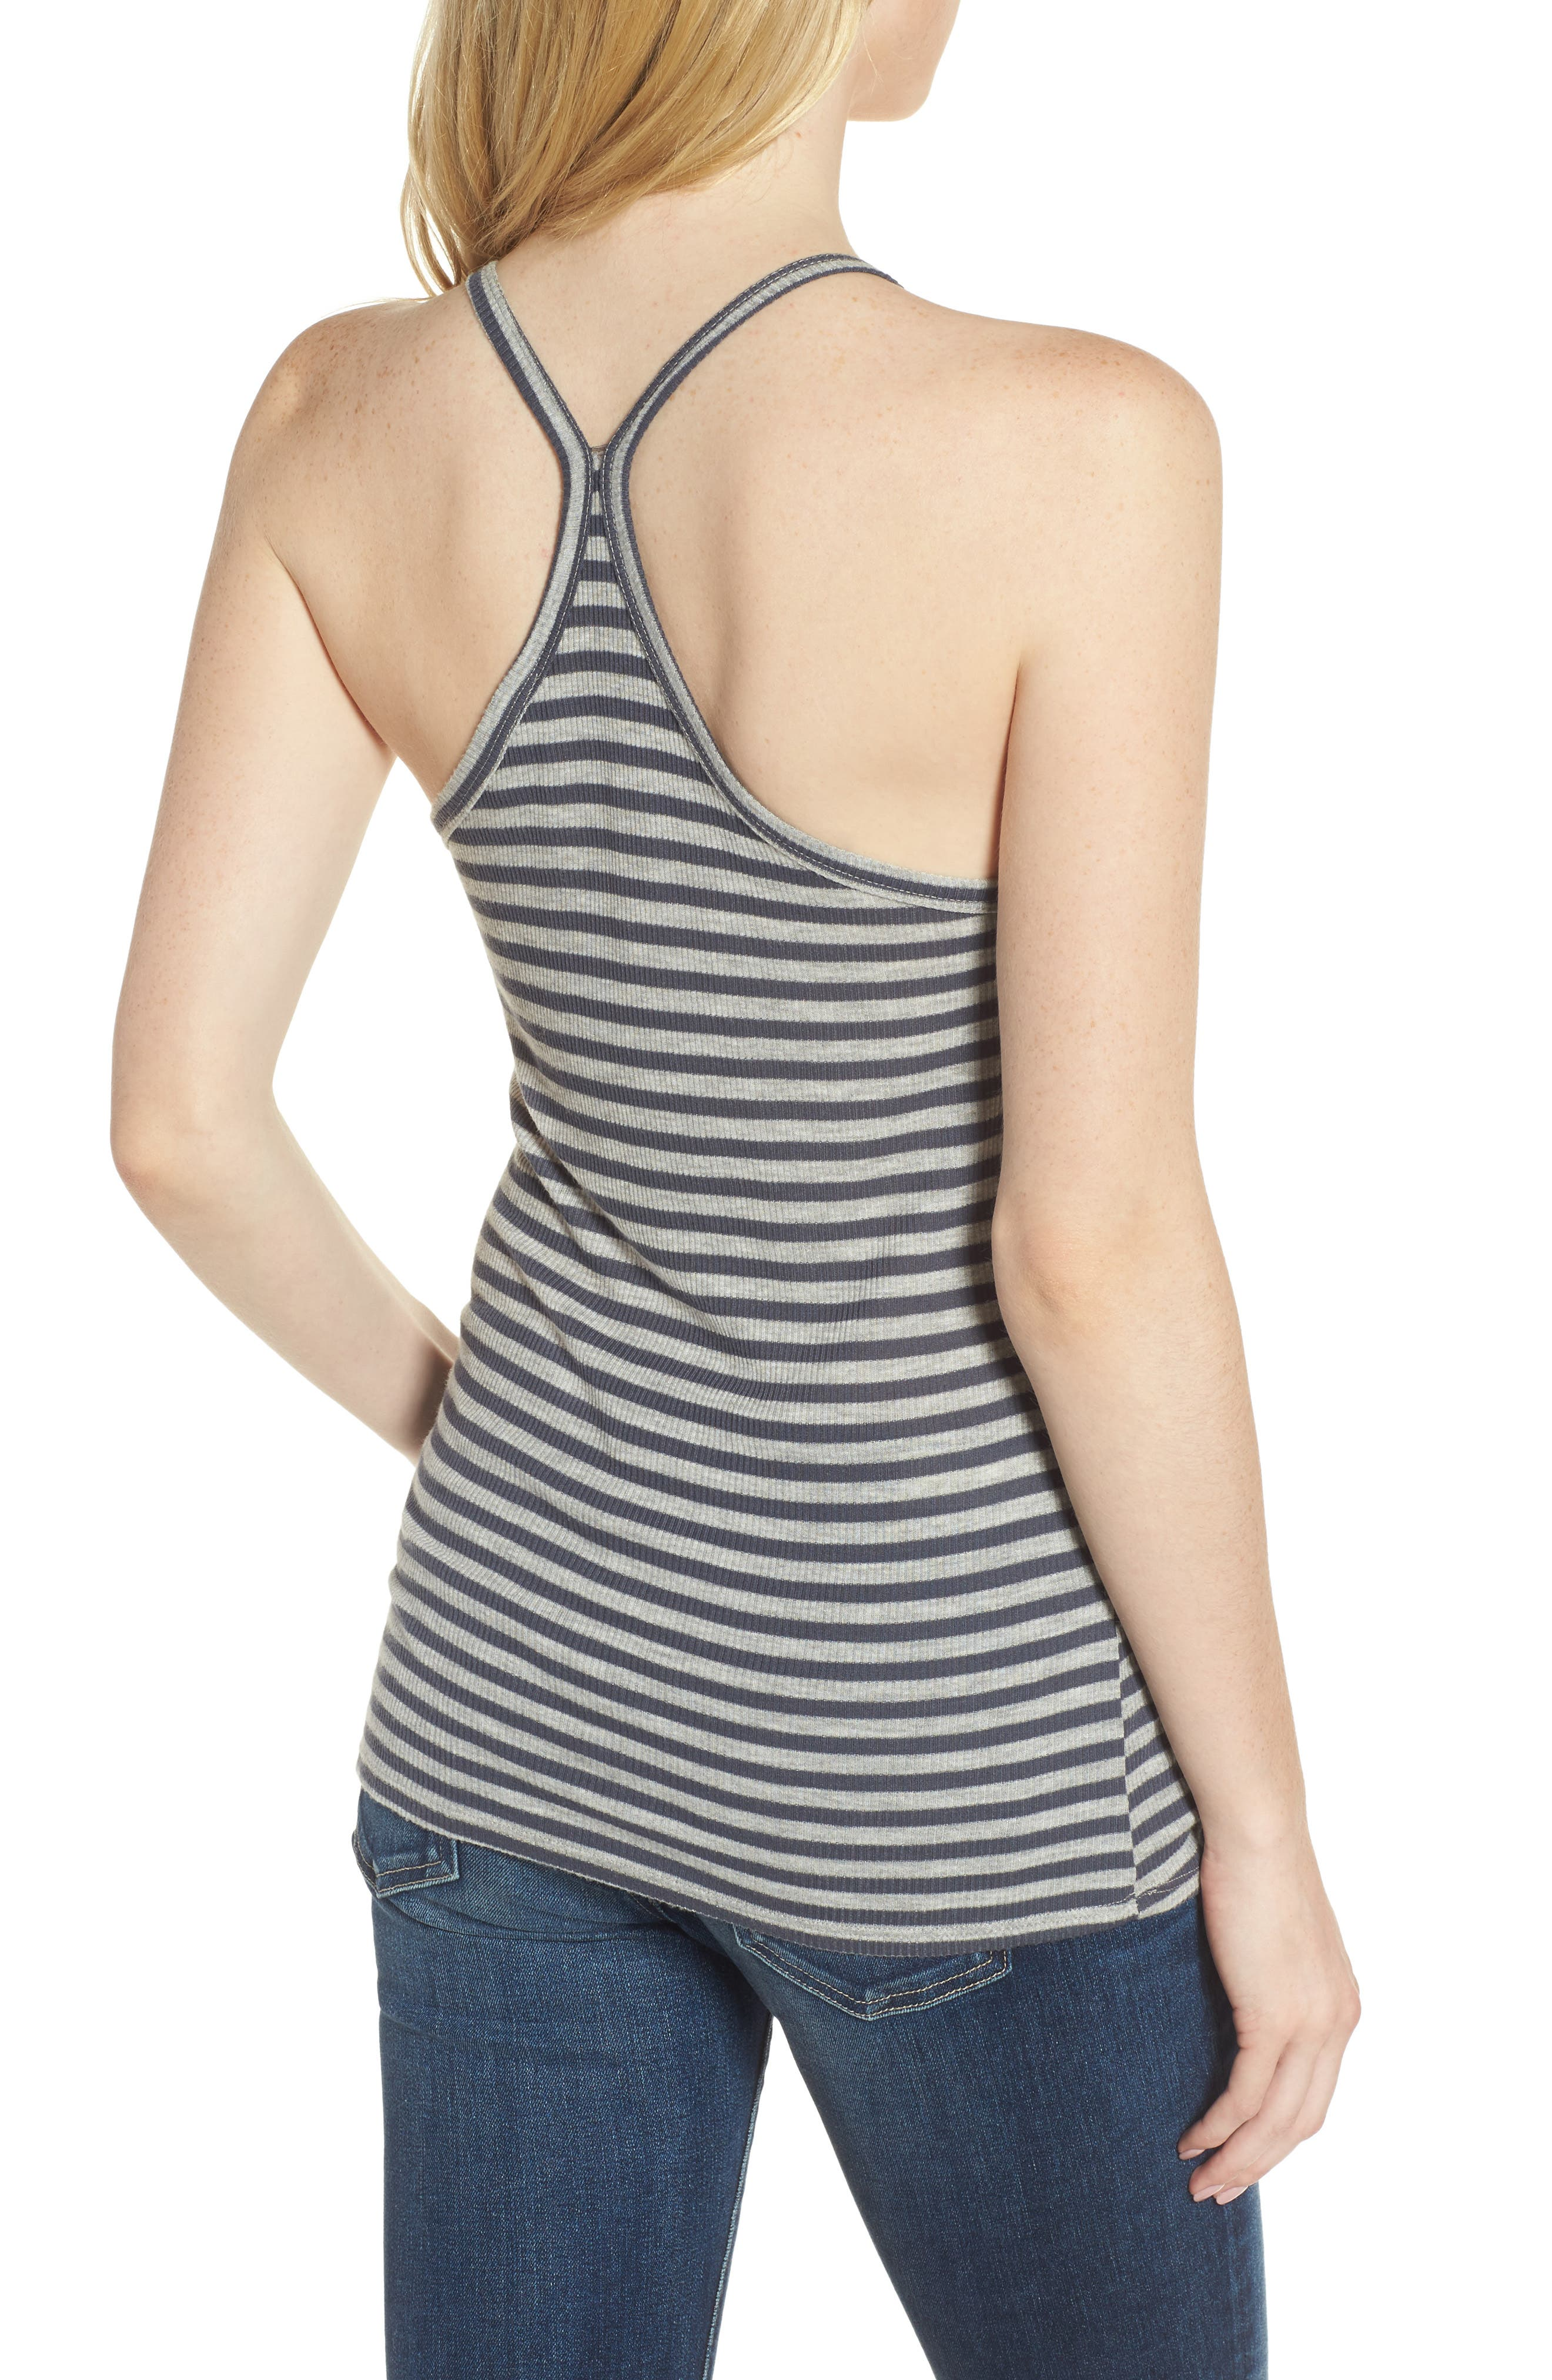 Rima Tank,                             Alternate thumbnail 2, color,                             Blueberry/ Heather Grey